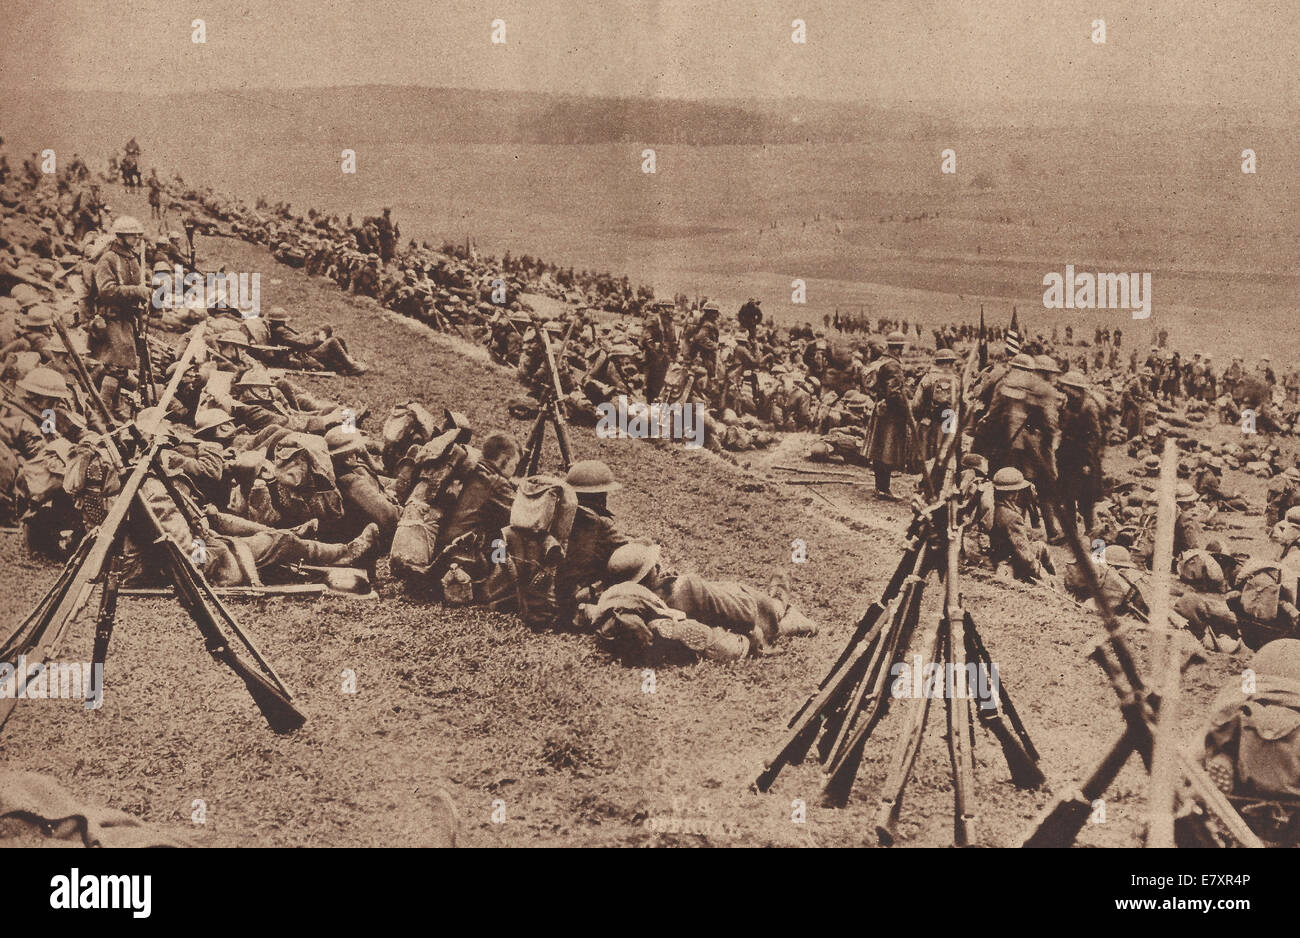 If the Germans hadn't signed the Peace Treaty, the Allies were fully prepared to advance, end of World War I - Stock Image